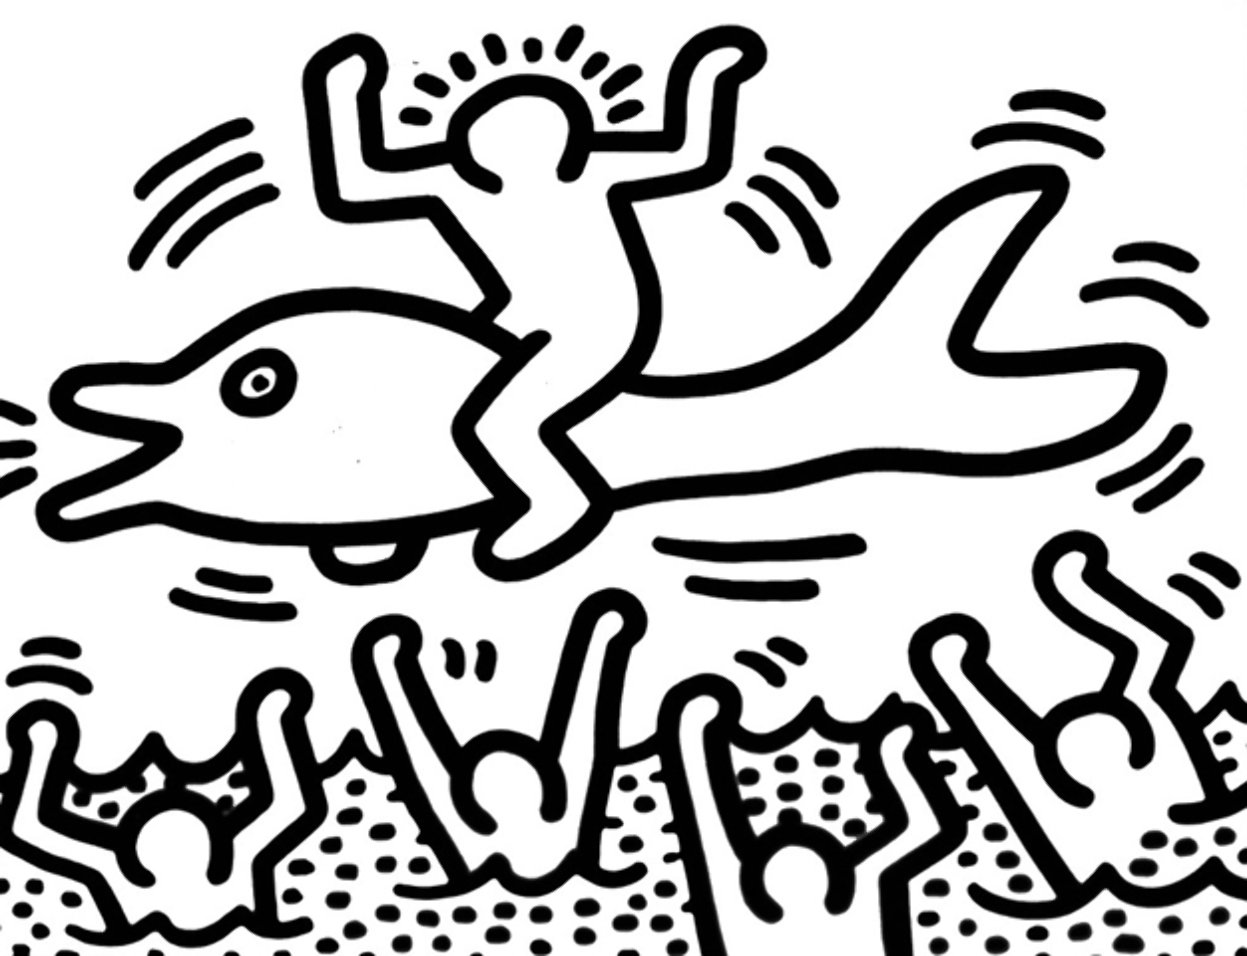 Keith haring coloring pages sketch coloring page for Keith haring figure templates